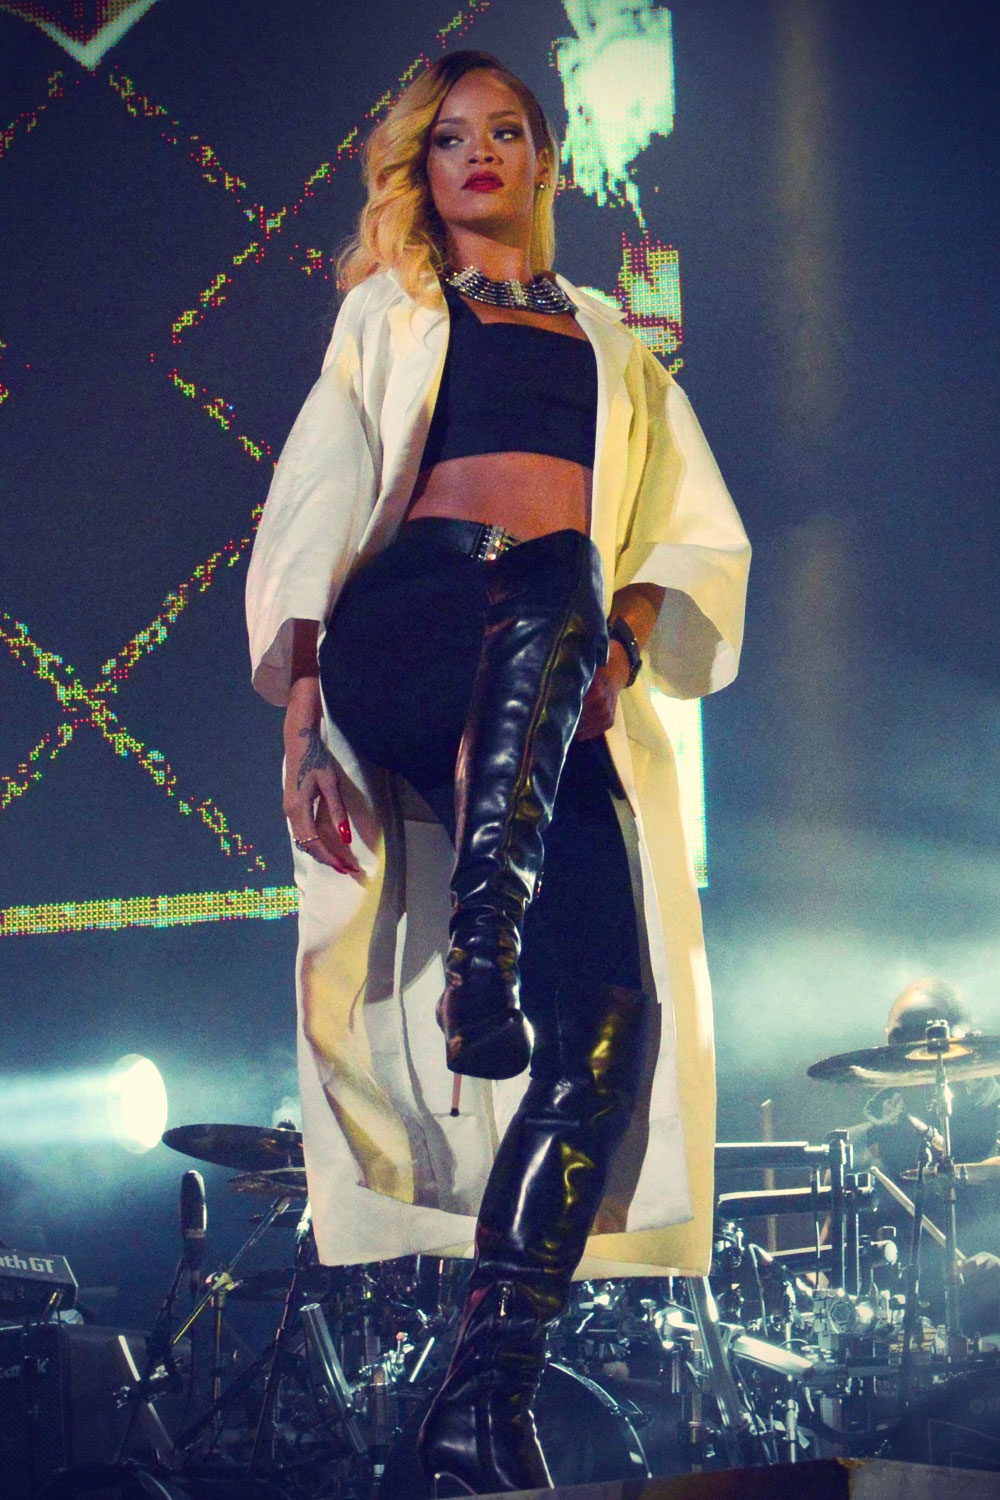 Rihanna performs at the Mawazine Festival in Rabat